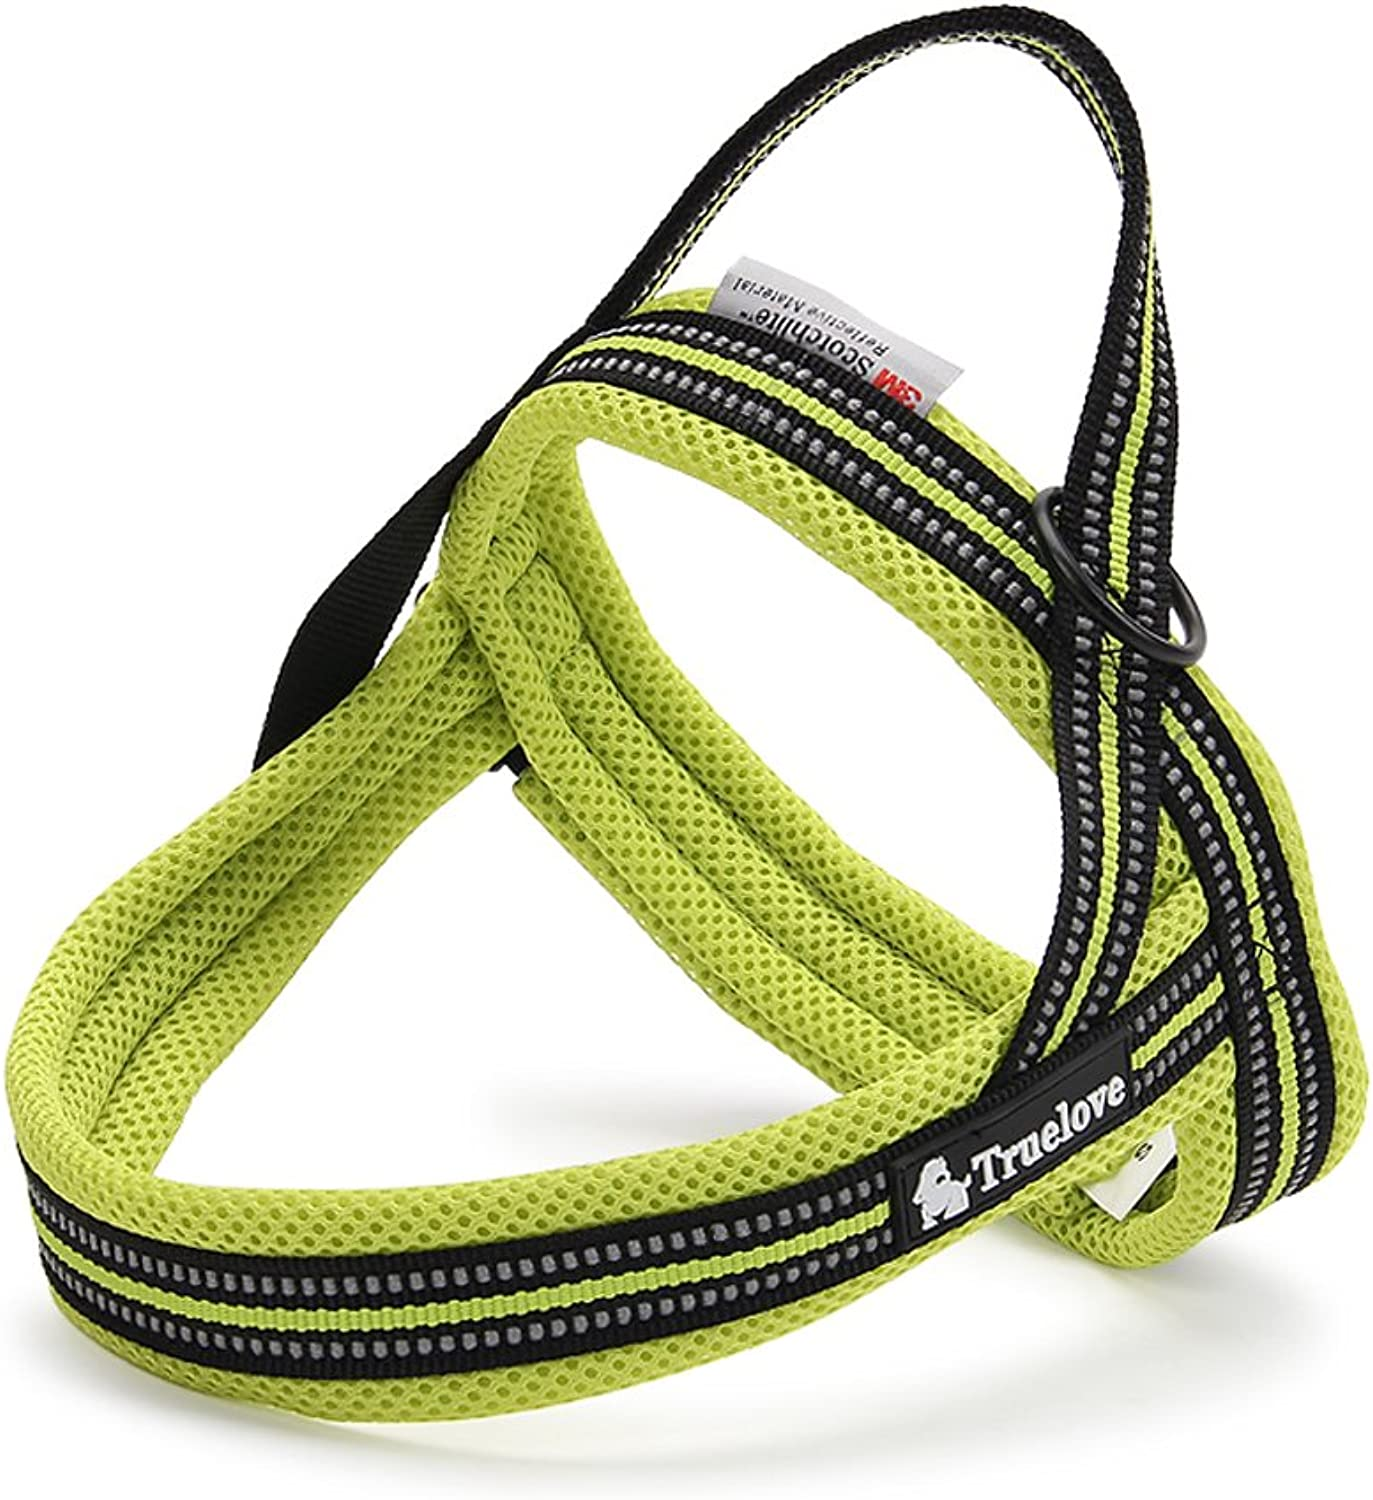 Fashion Shop Dog Harness Vest Cool Comfort Nylon for dogs Small Medium Large Girth, 3M Reflective Outdoor Adventure Pet Vest with Padded. (XS, Green)